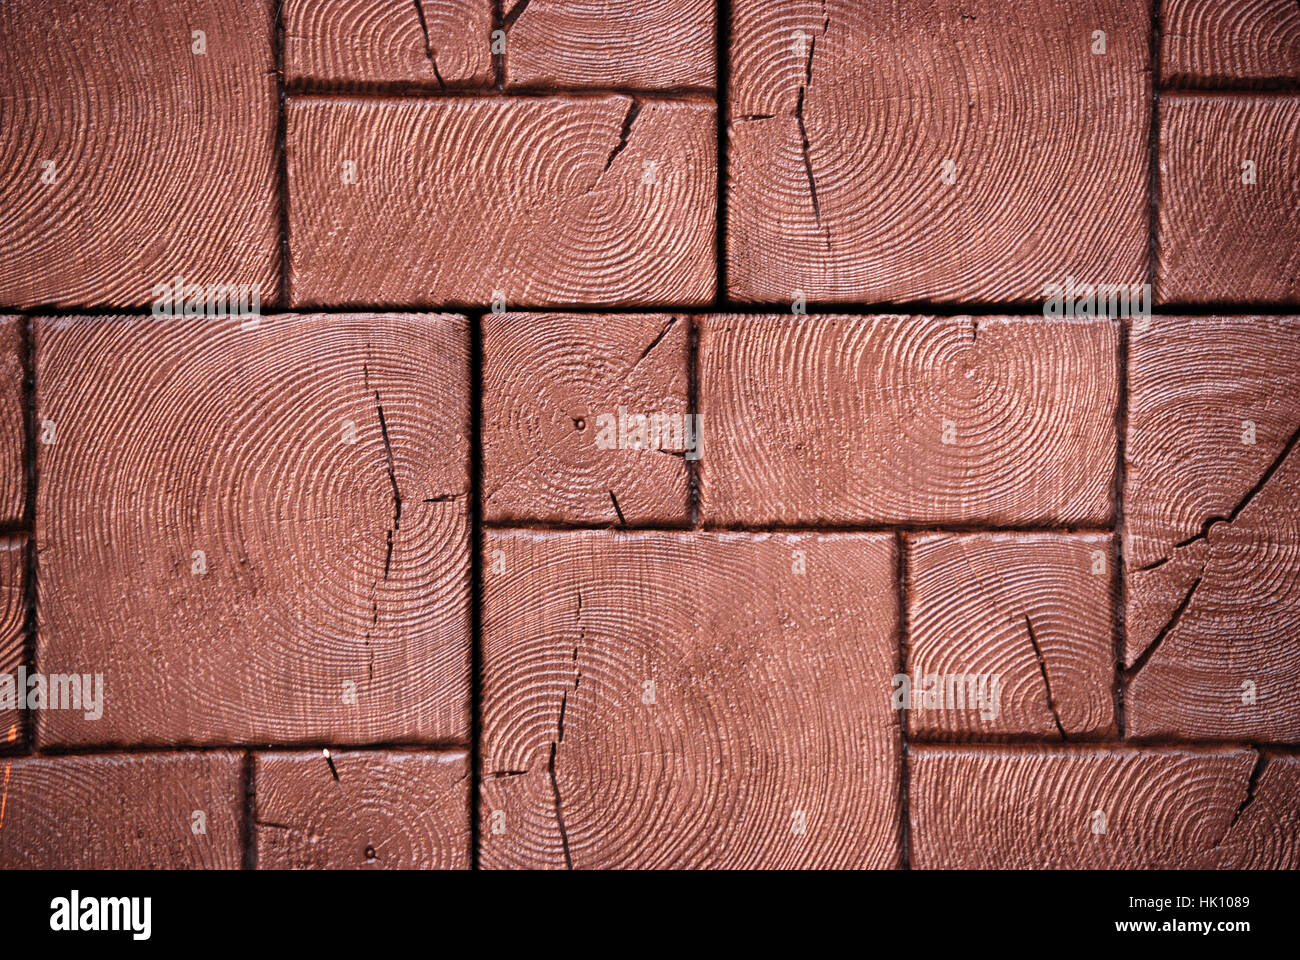 Different sizes of brown pavement tiles background - Stock Image